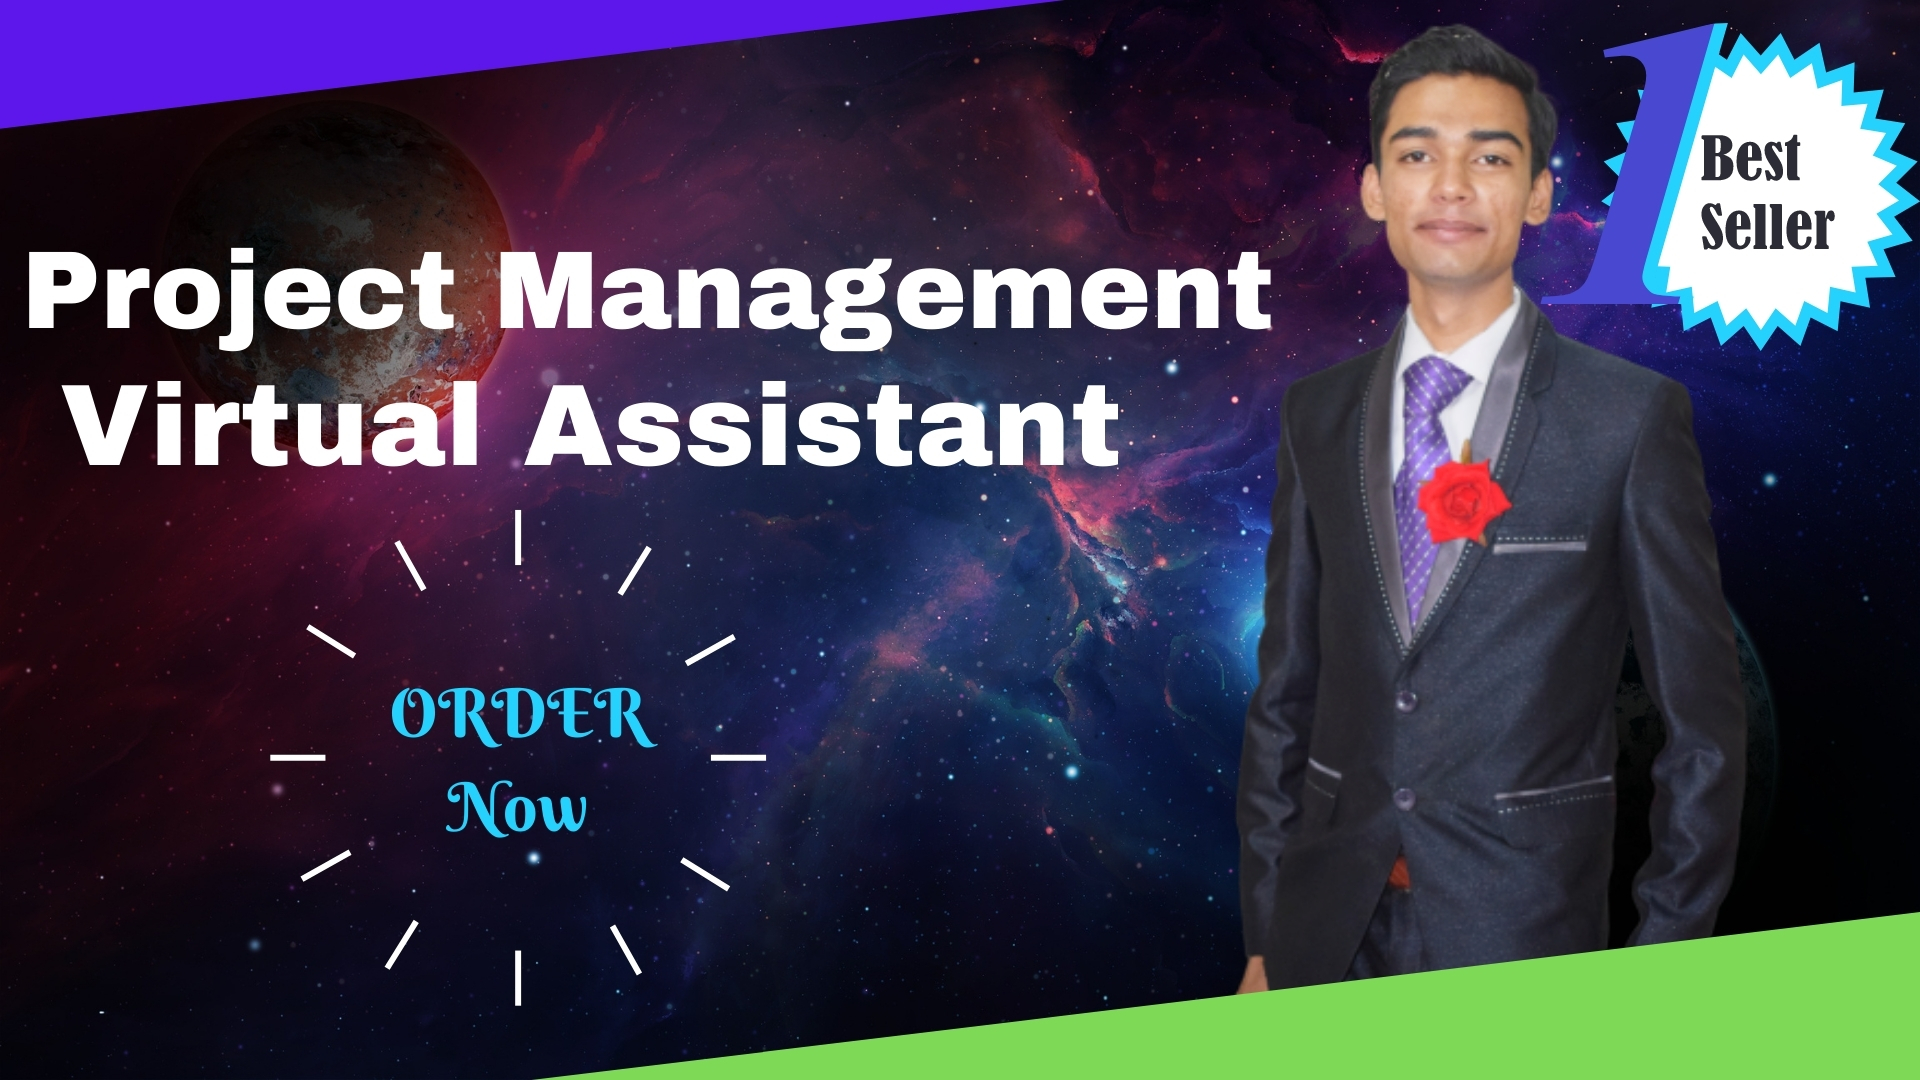 I will be your project management virtual assistant trello,  asana,  hubspot and slack